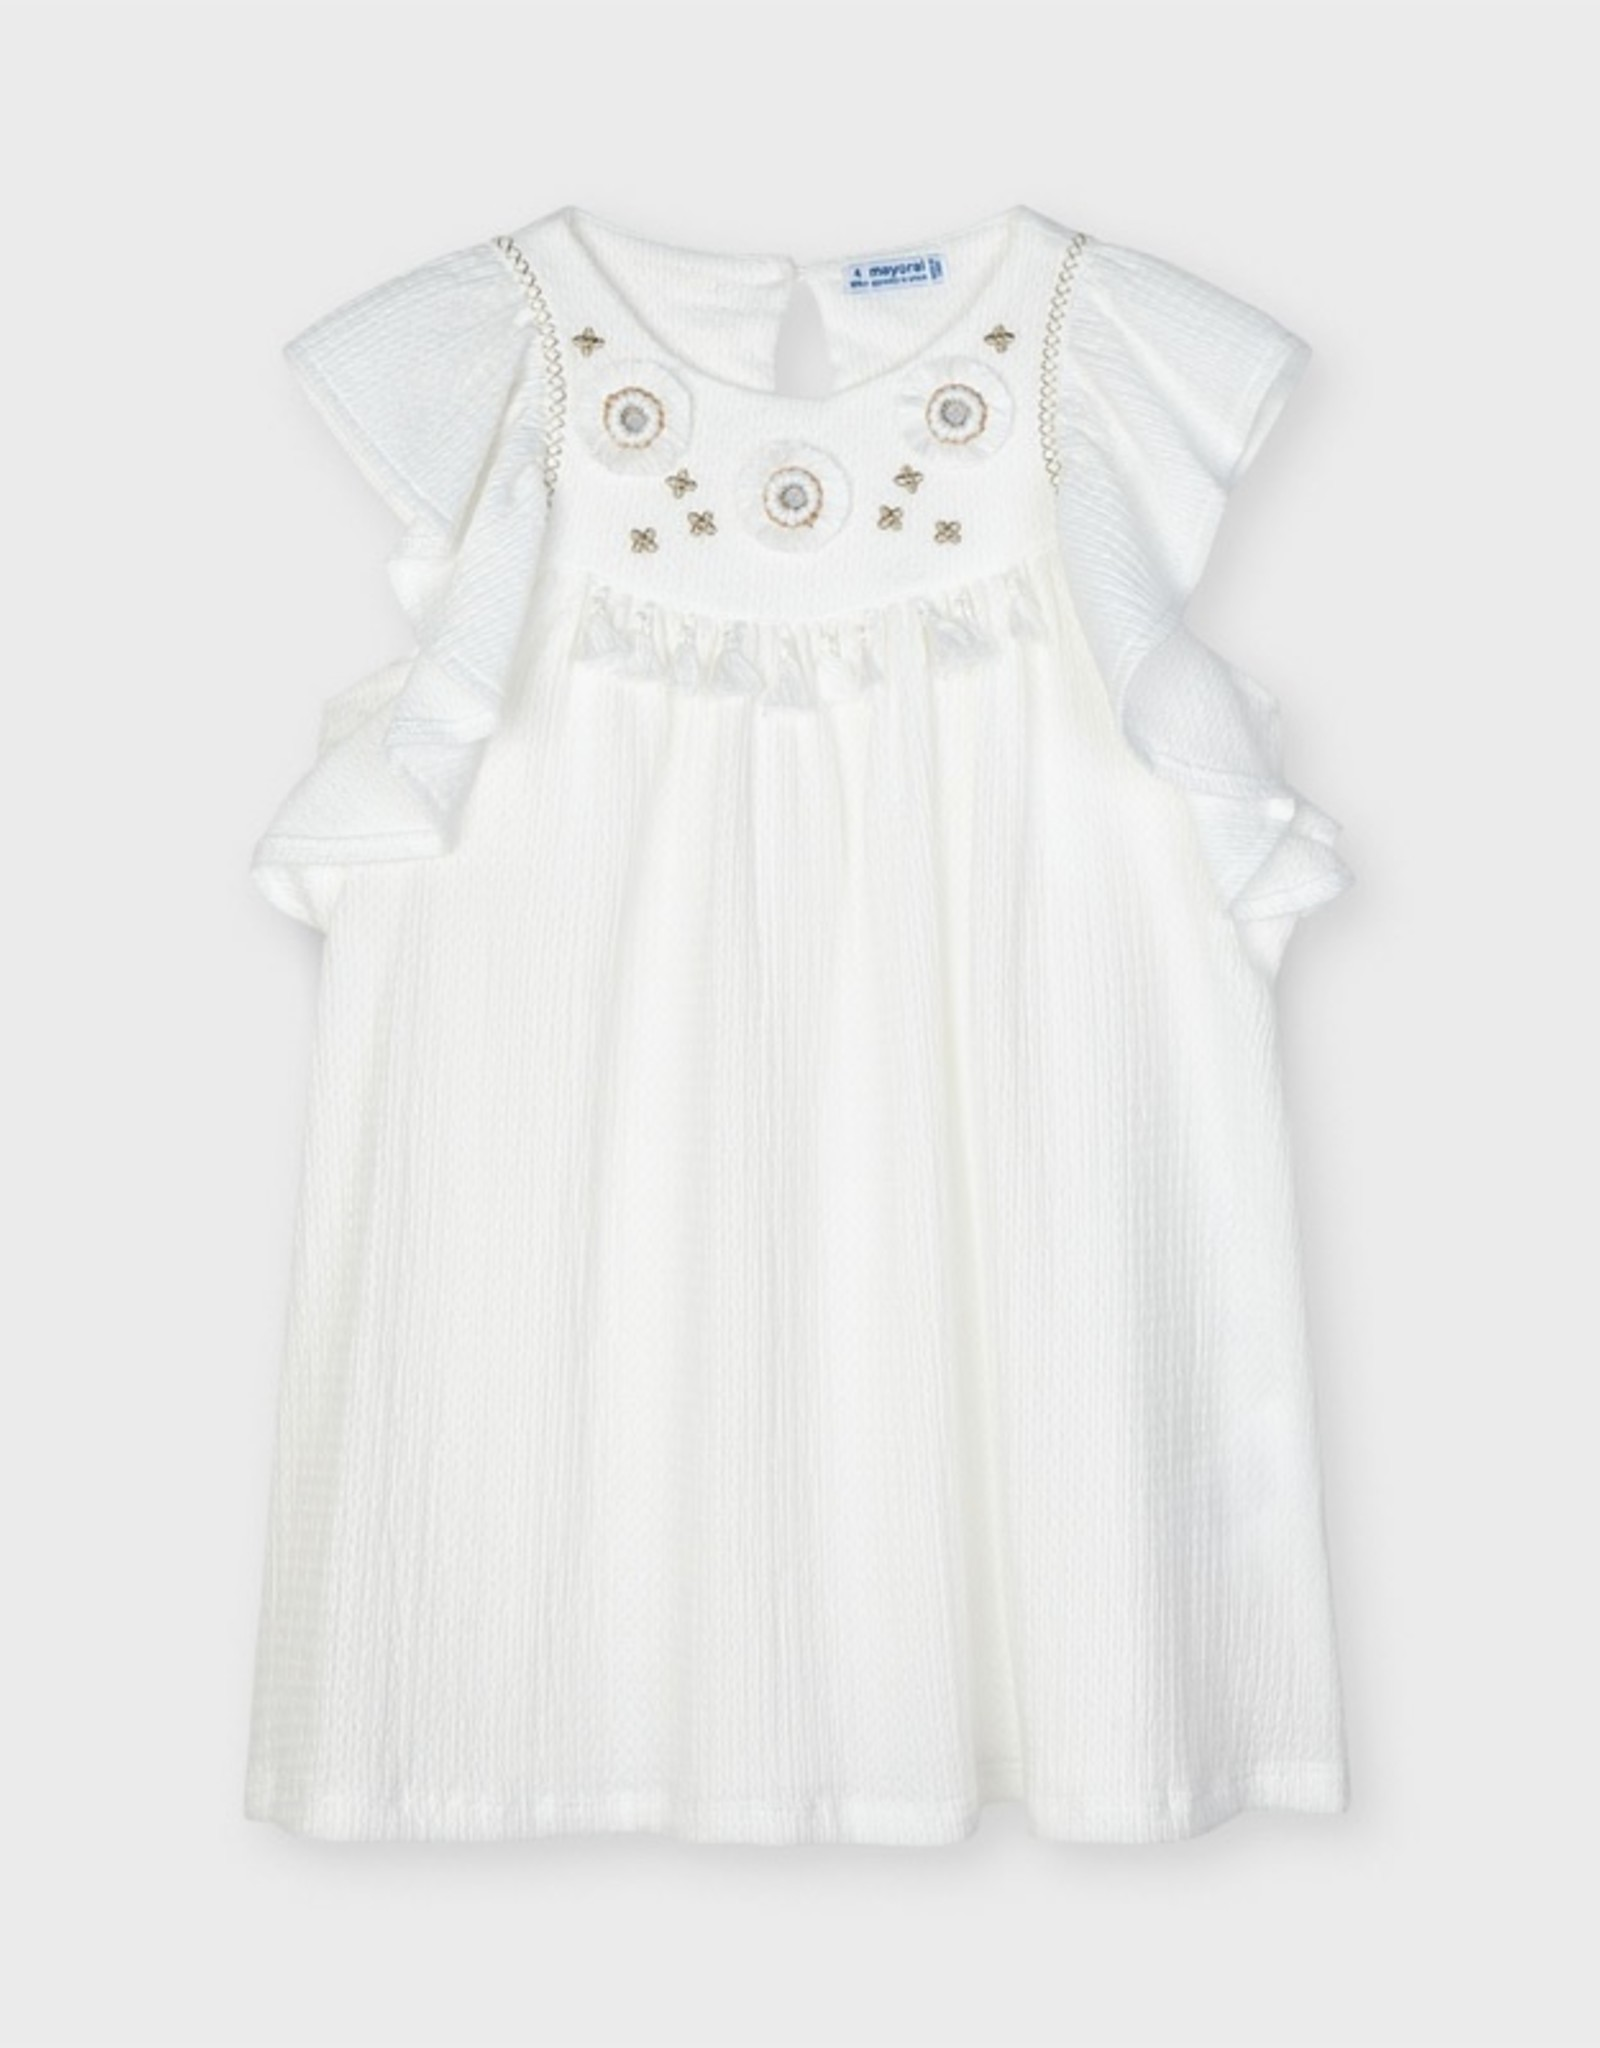 Mayoral Embroidered Applique Dress White